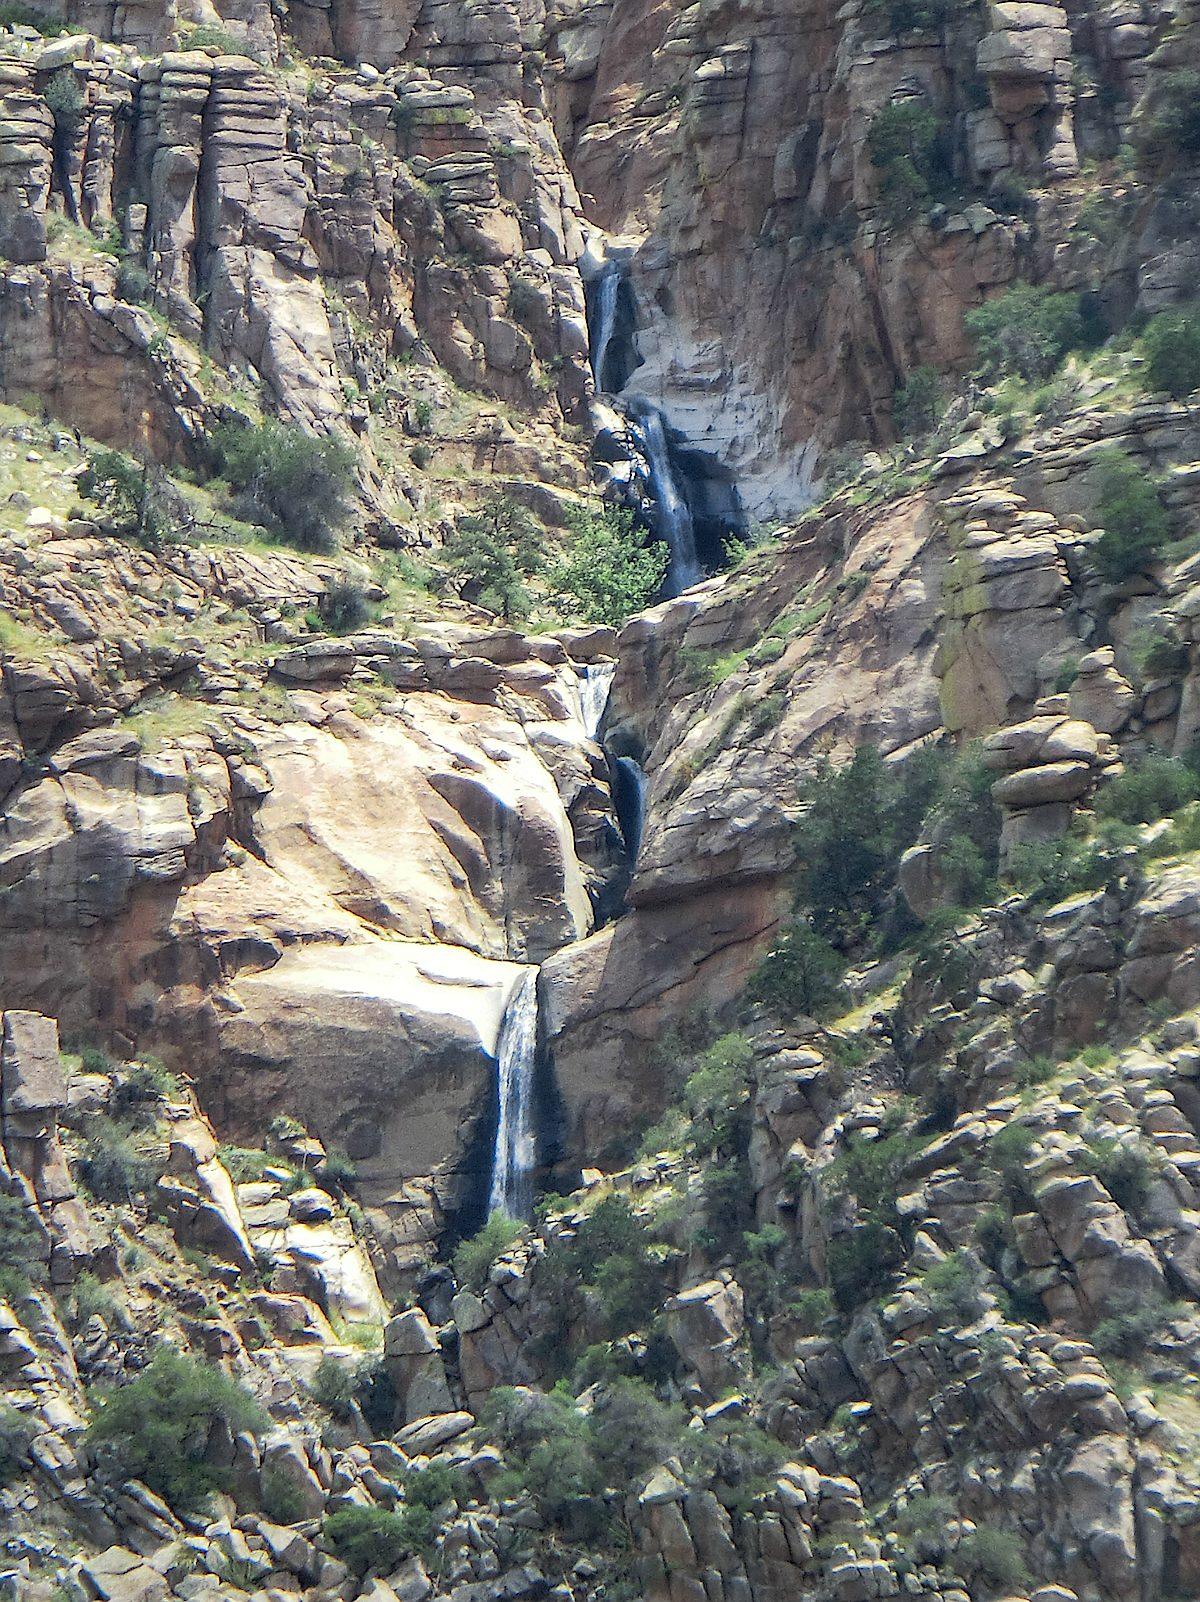 Water falls in Palisade Canyon - part of the amazing variety in the Pusch Ridge Wilderness. August 2013.